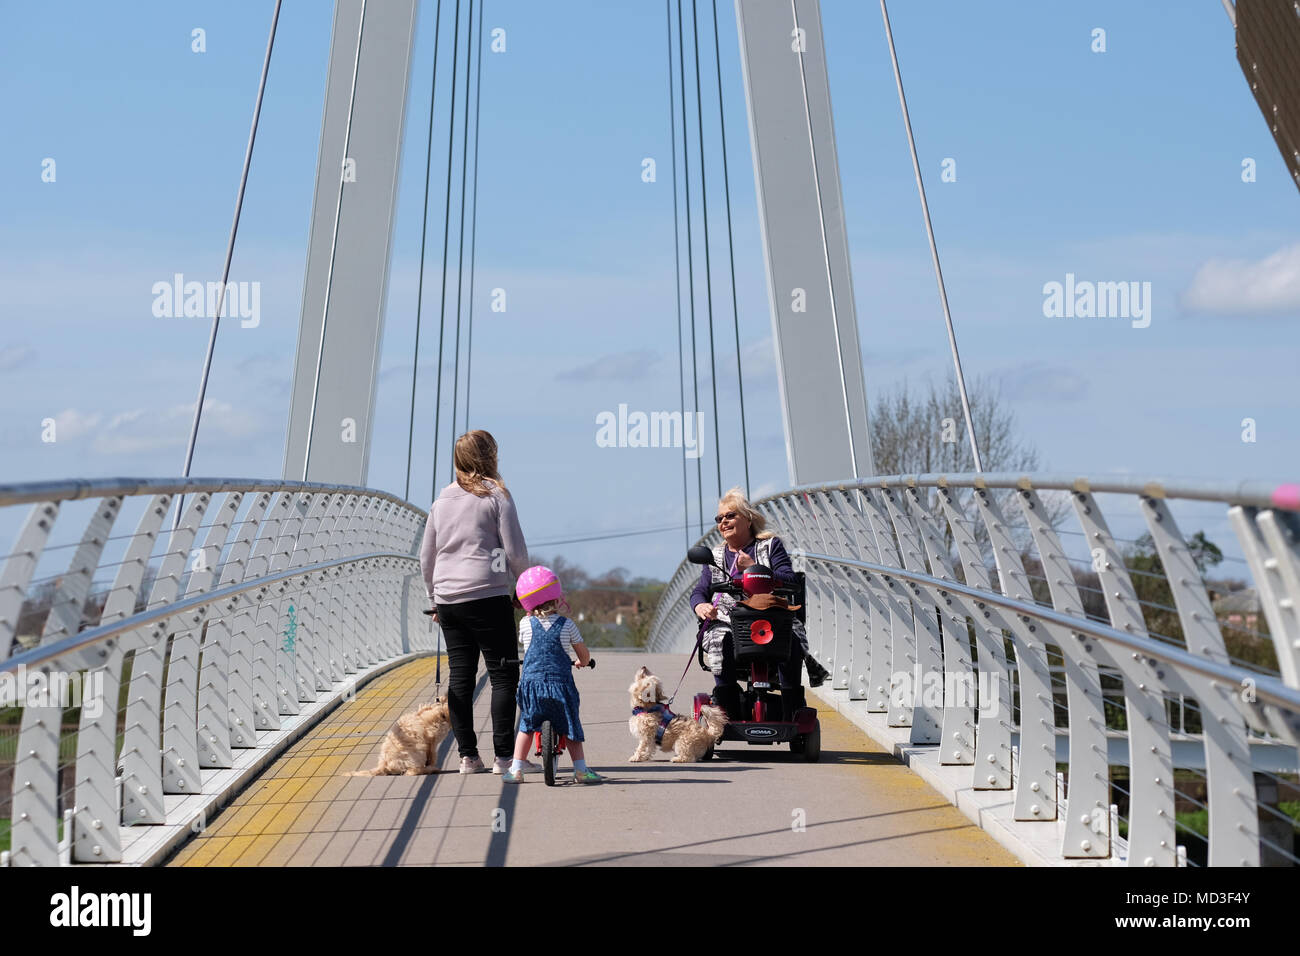 Hereford, Herefordshire - April 2018  - Pedestrians and dog walkers stop for a chat on the modern Hereford Greenway bridge over the River Wye that links Hereford city with Rotherwas, a Sustrans project. Photo Steven May / Alamy Live News Stock Photo